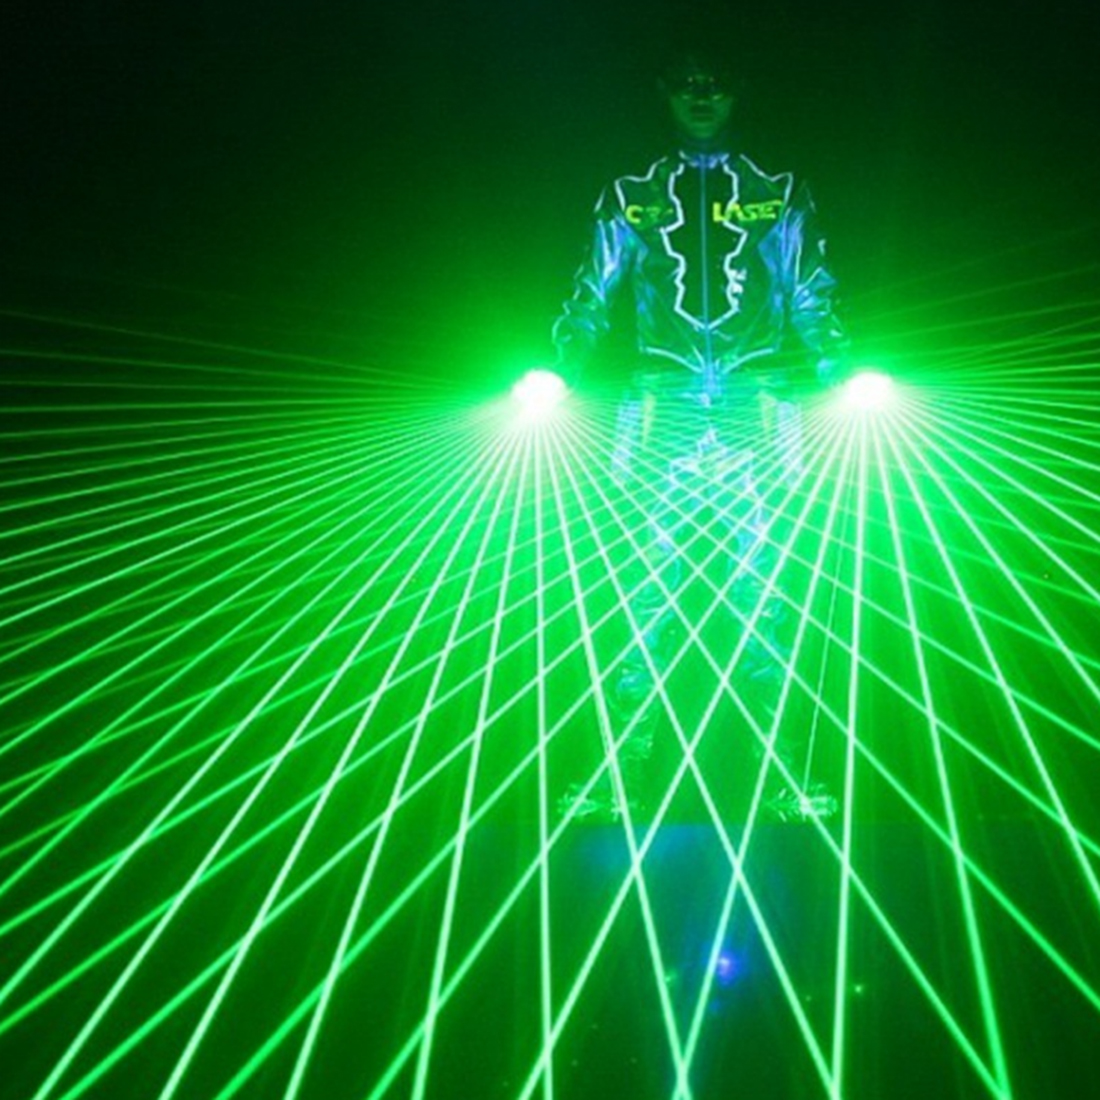 1Pcs Super Cool Green Laser Gloves Dancing Stage Show Light With 4 pcs Lasers Luminous Gloves Light for DJ Club Party Bars